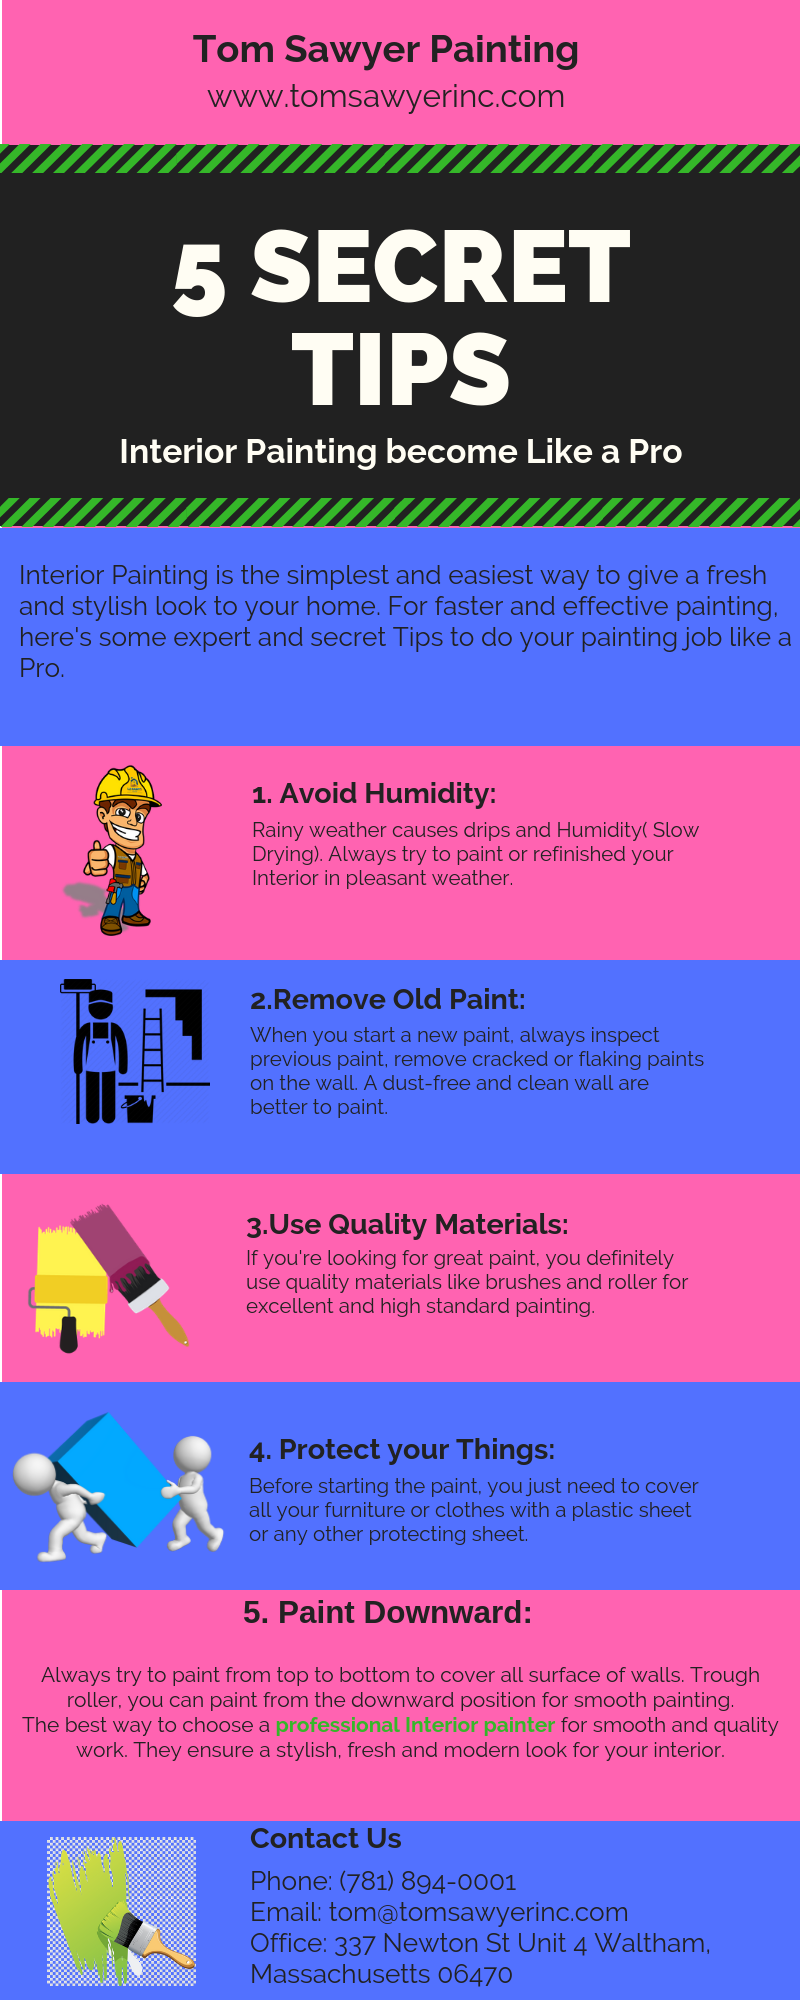 Interior Painting Is The Simplest And Easiest Way To Give A Fresh And Stylish Look To Your Home The B Interior Paint Painting Contractors House Paint Exterior